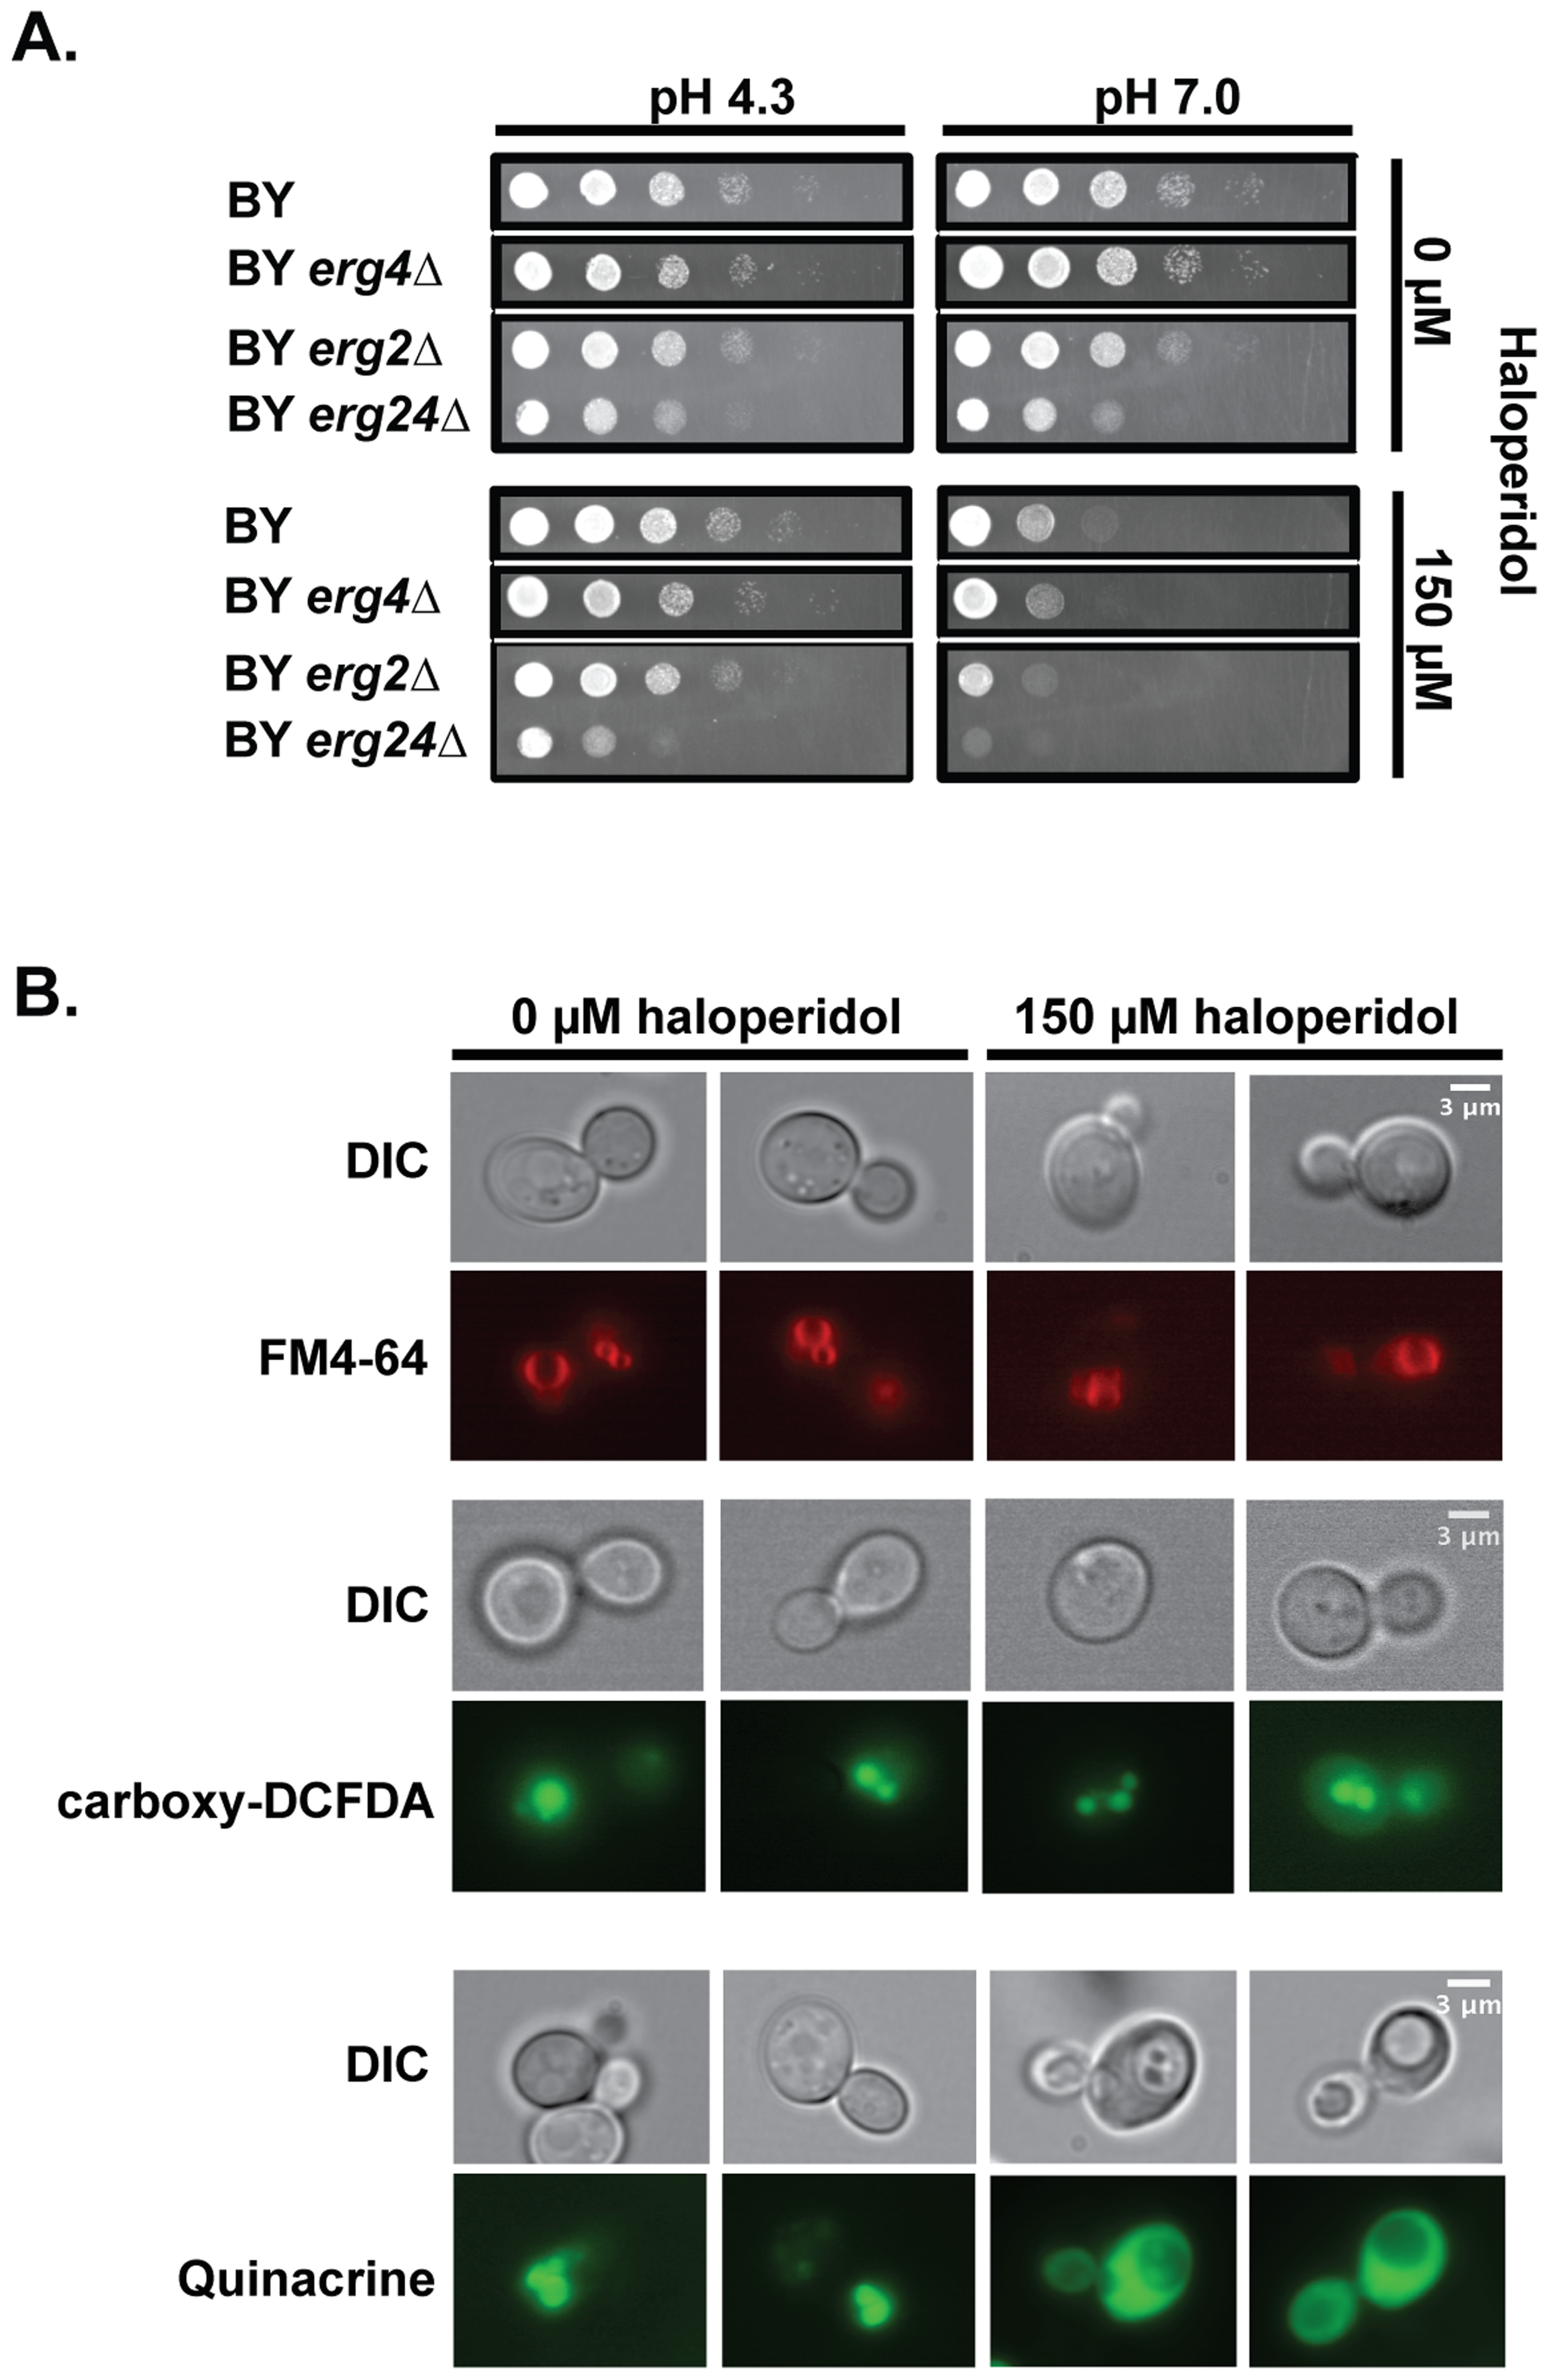 Haloperidol induces pH dependent sensitivity and other biological effects in yeast.